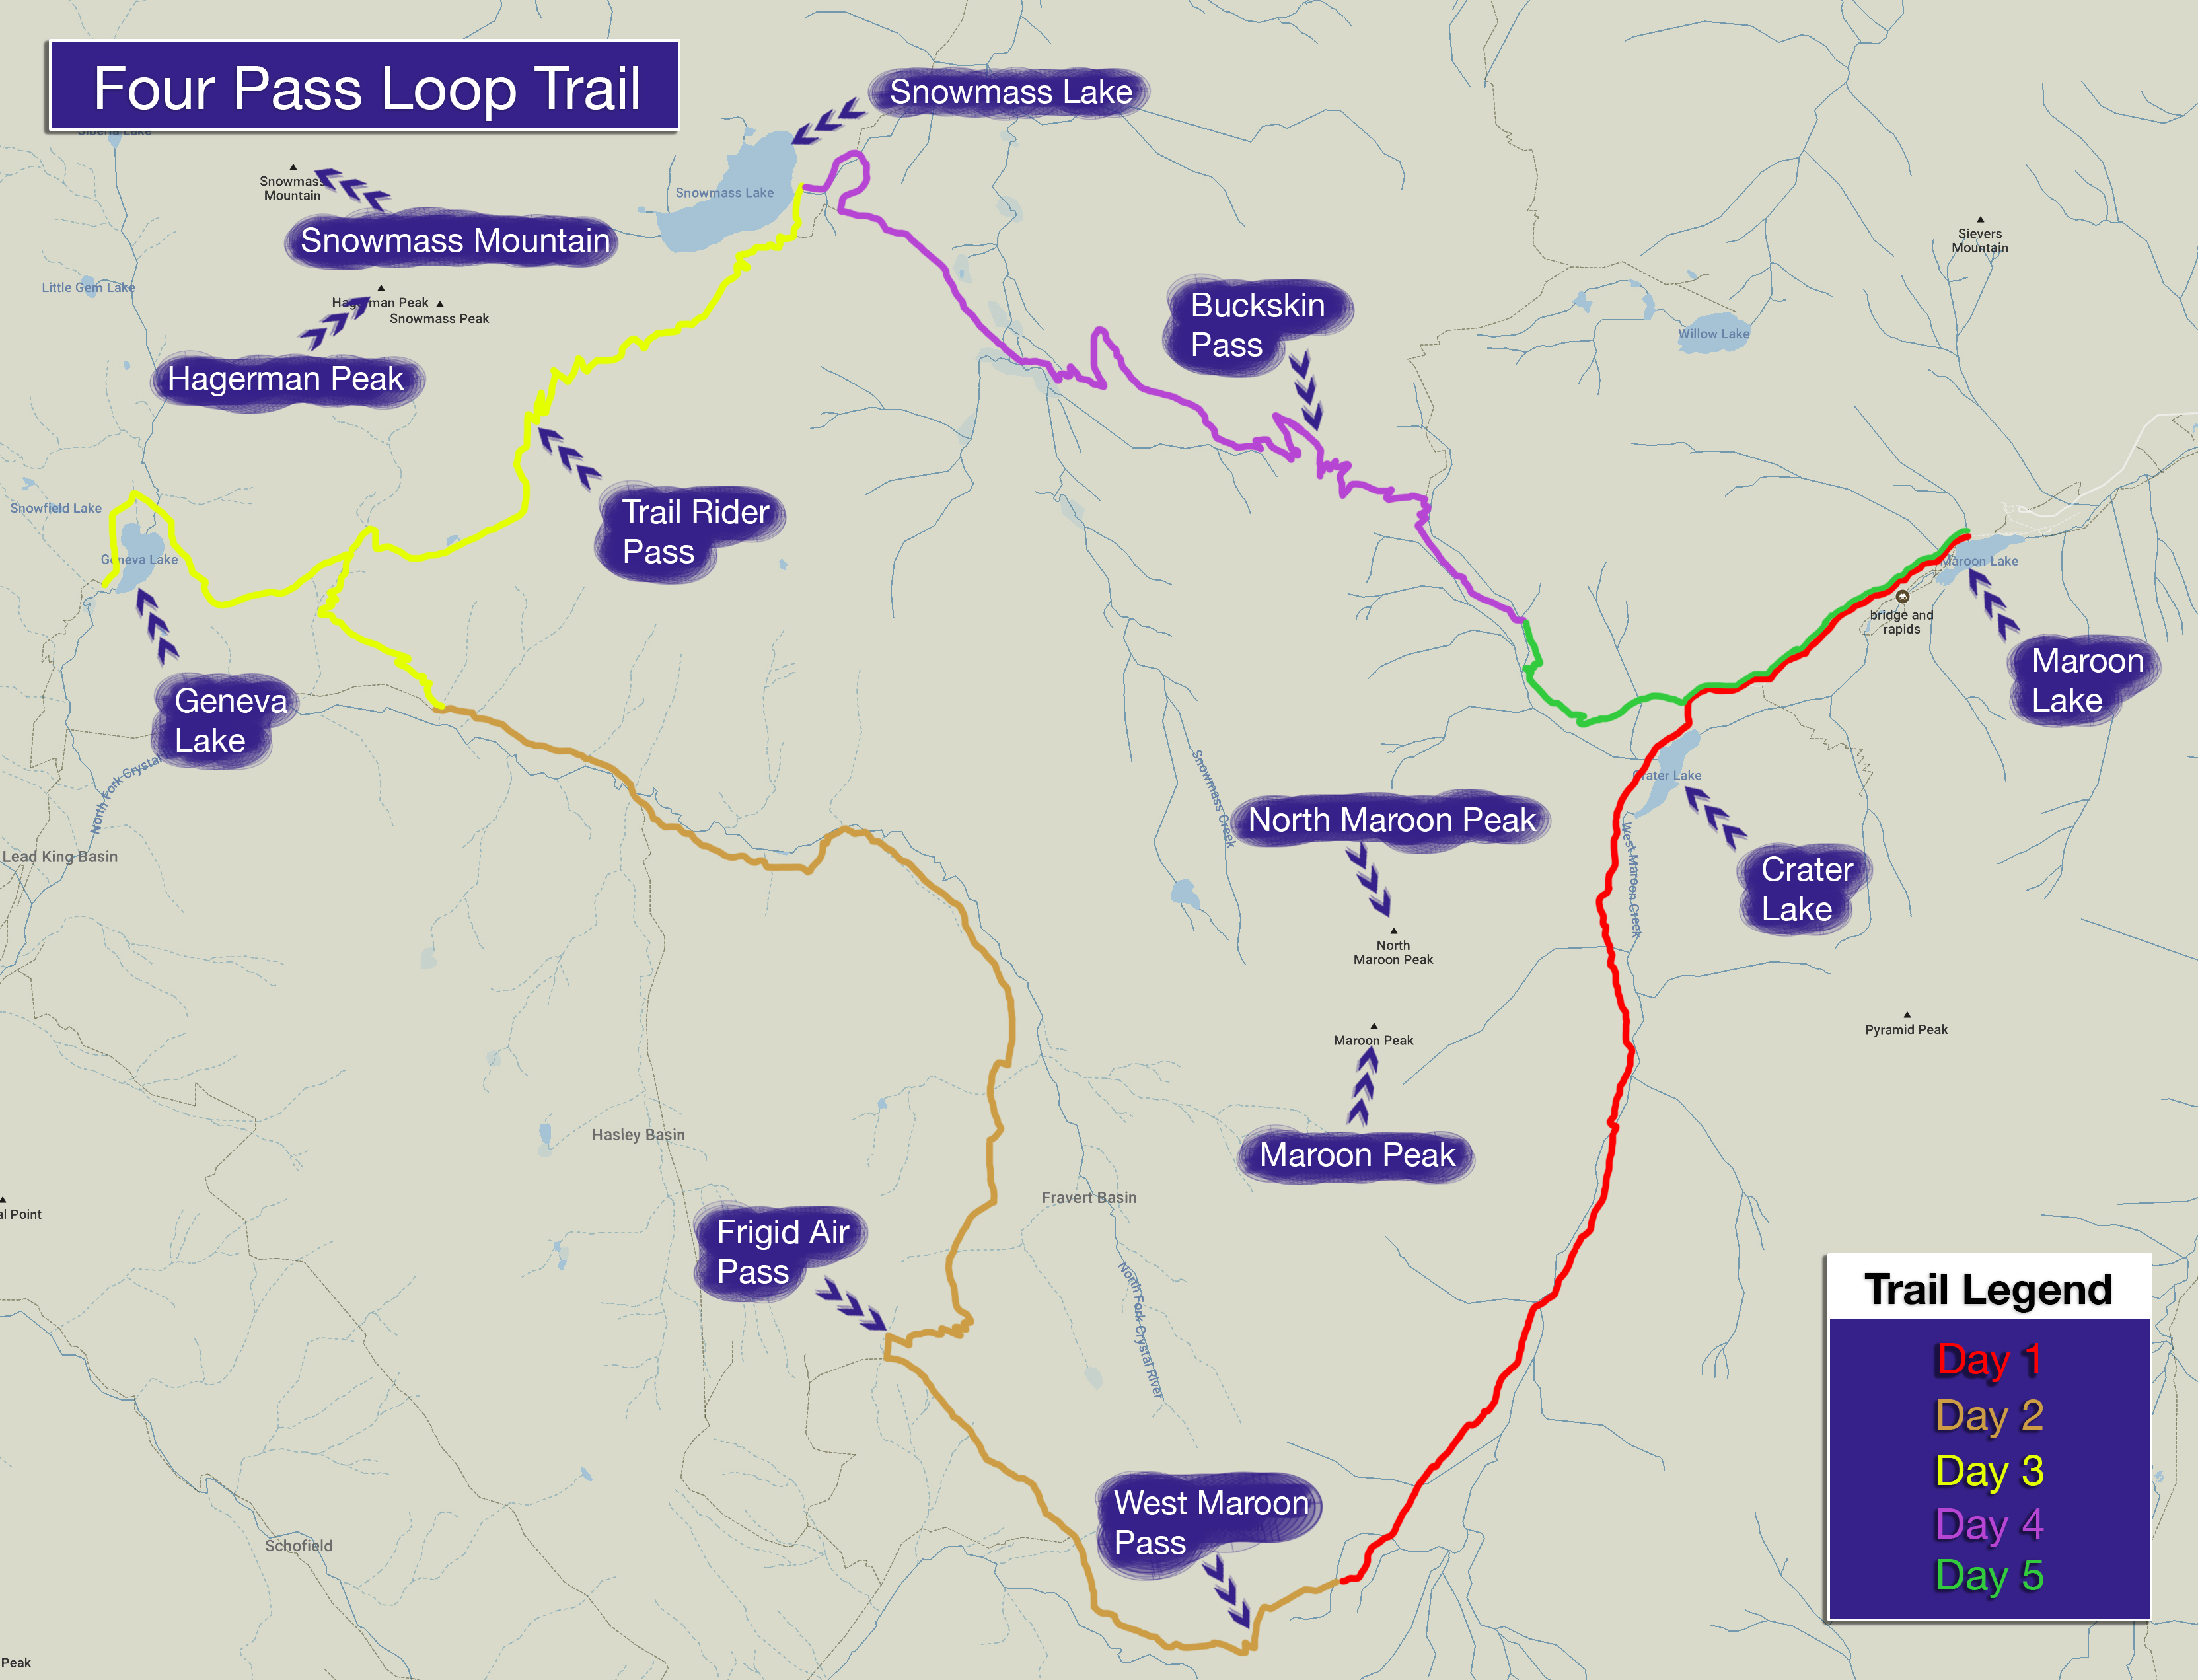 Hiking map for Colorado's Four Pass Loop.